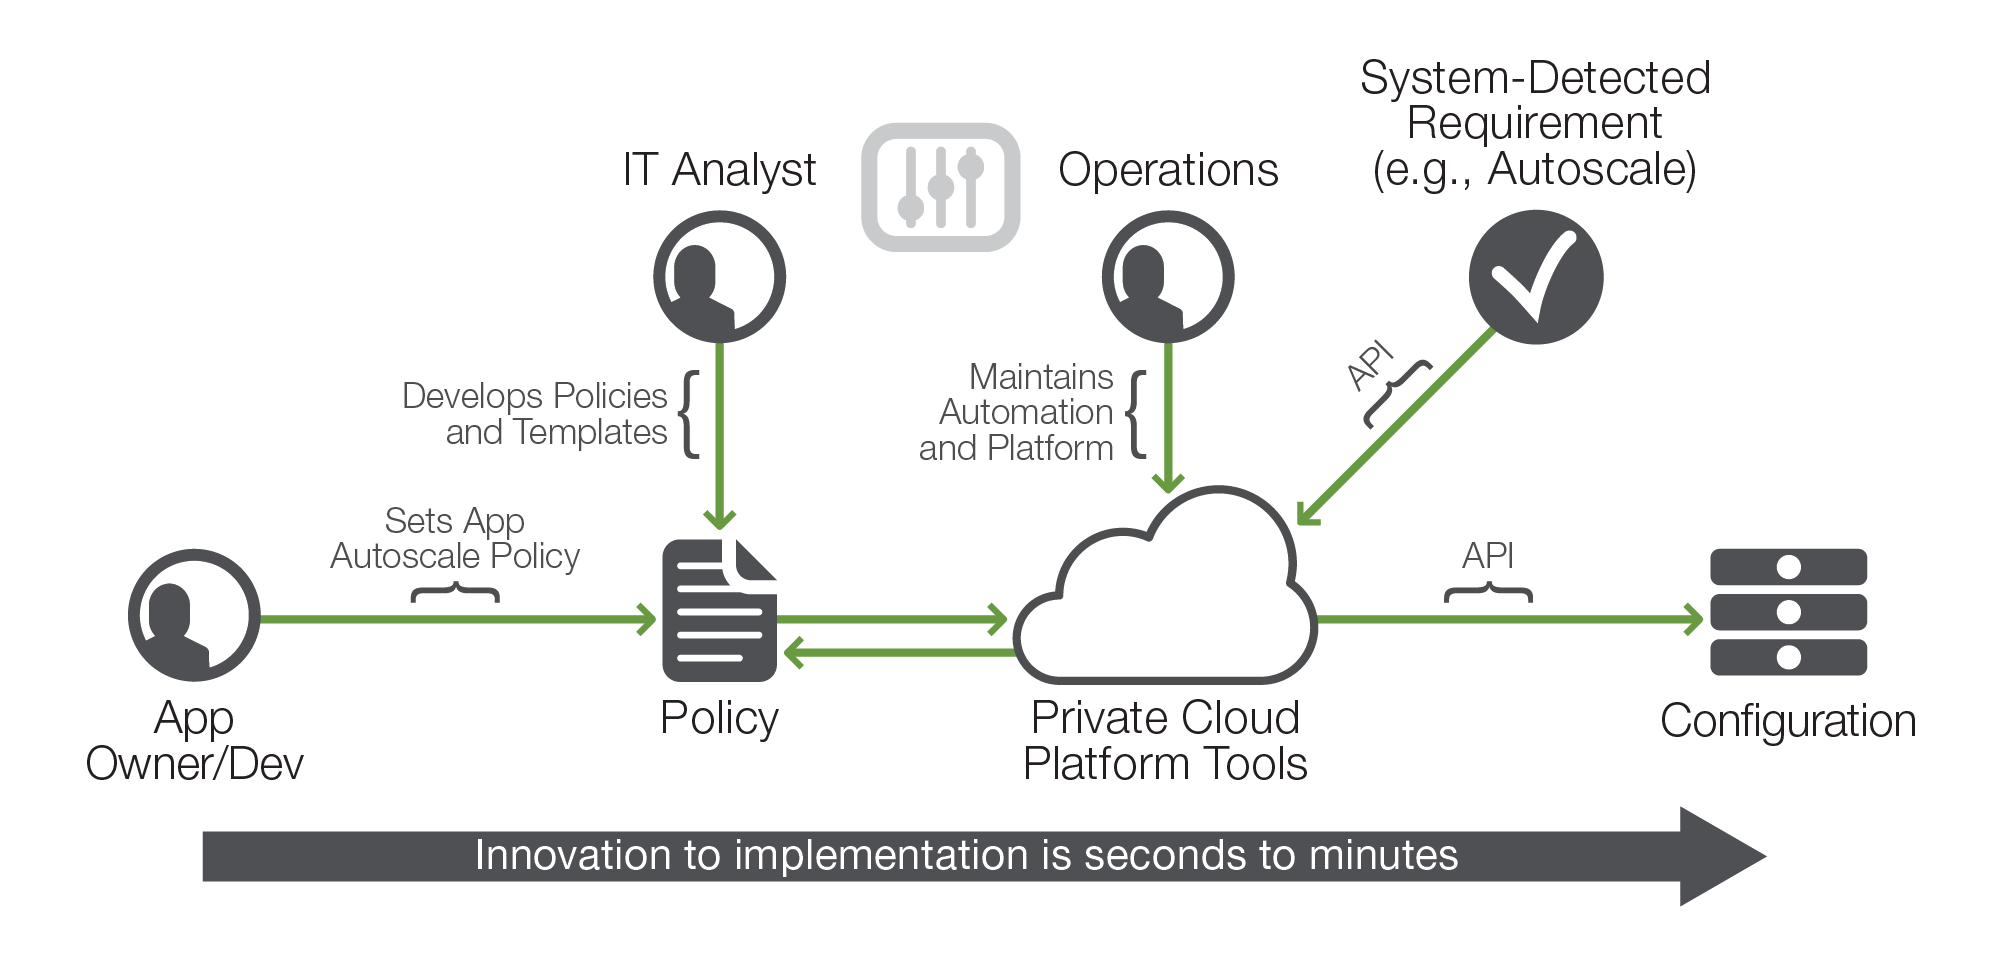 Private Cloud 101 Move At The Speed Of Business